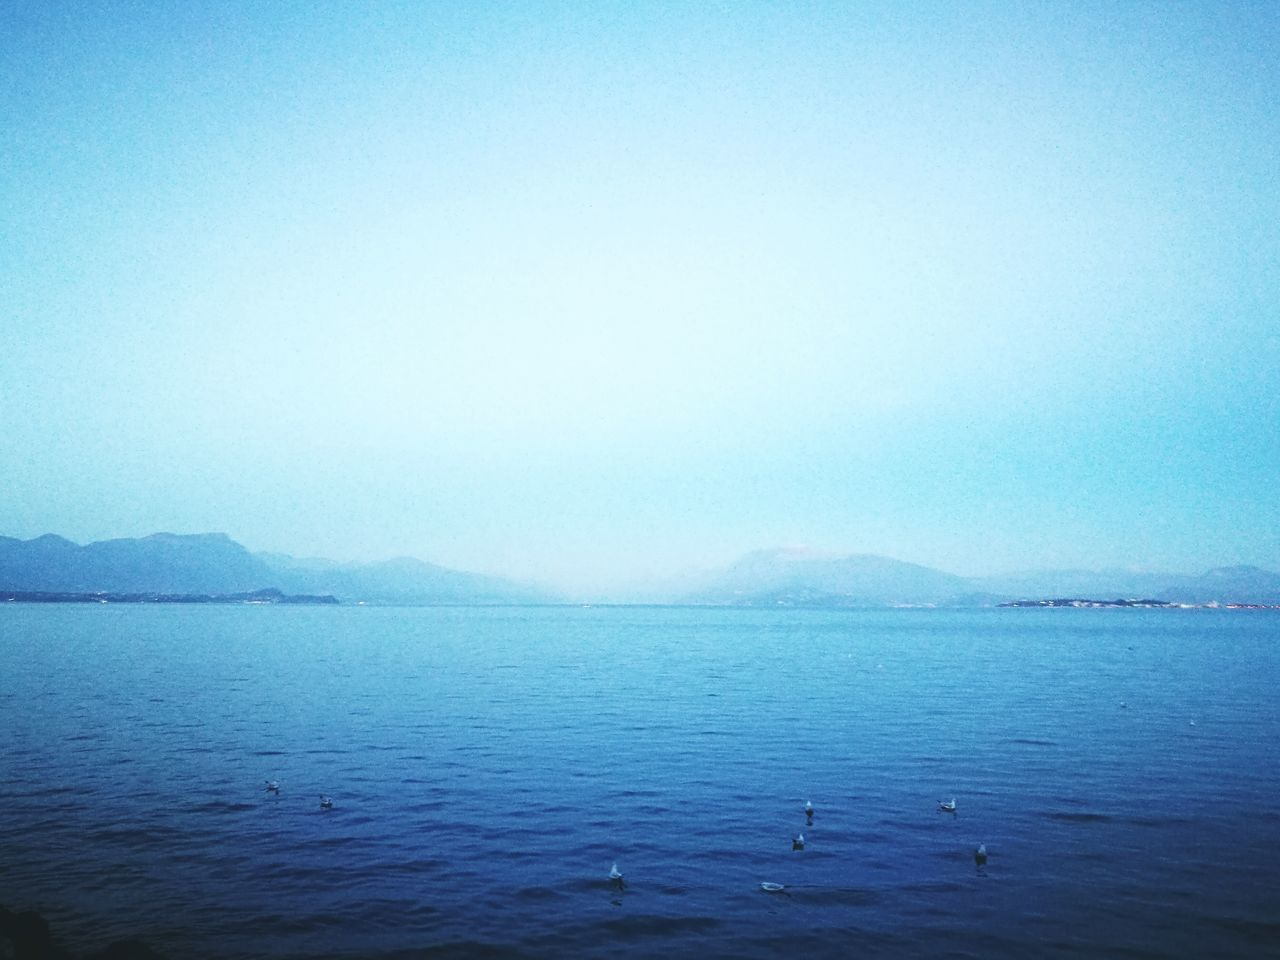 tranquility, copy space, water, scenics, tranquil scene, beauty in nature, blue, clear sky, nature, no people, sea, outdoors, mountain, day, sky